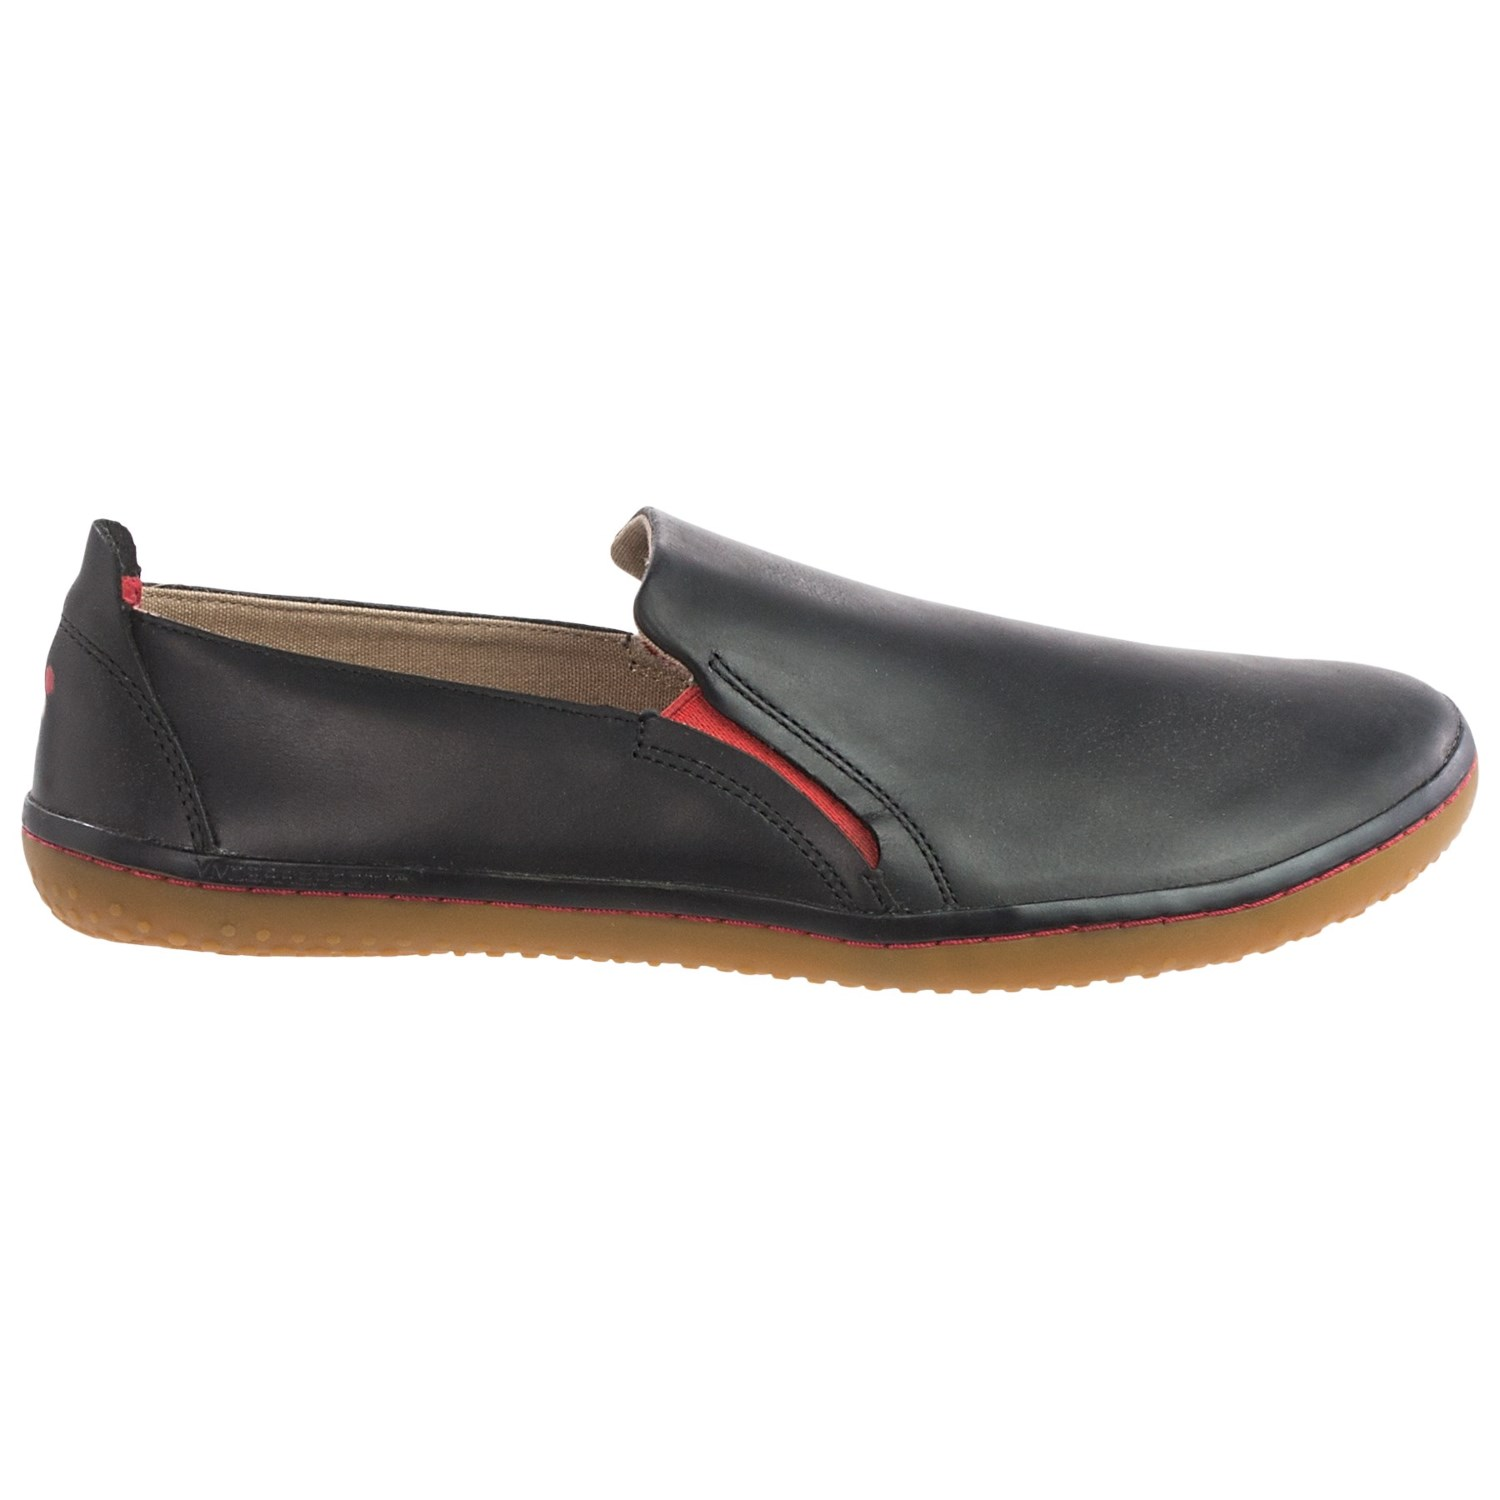 Vivobarefoot Mata Leather Shoes For Men Save 70